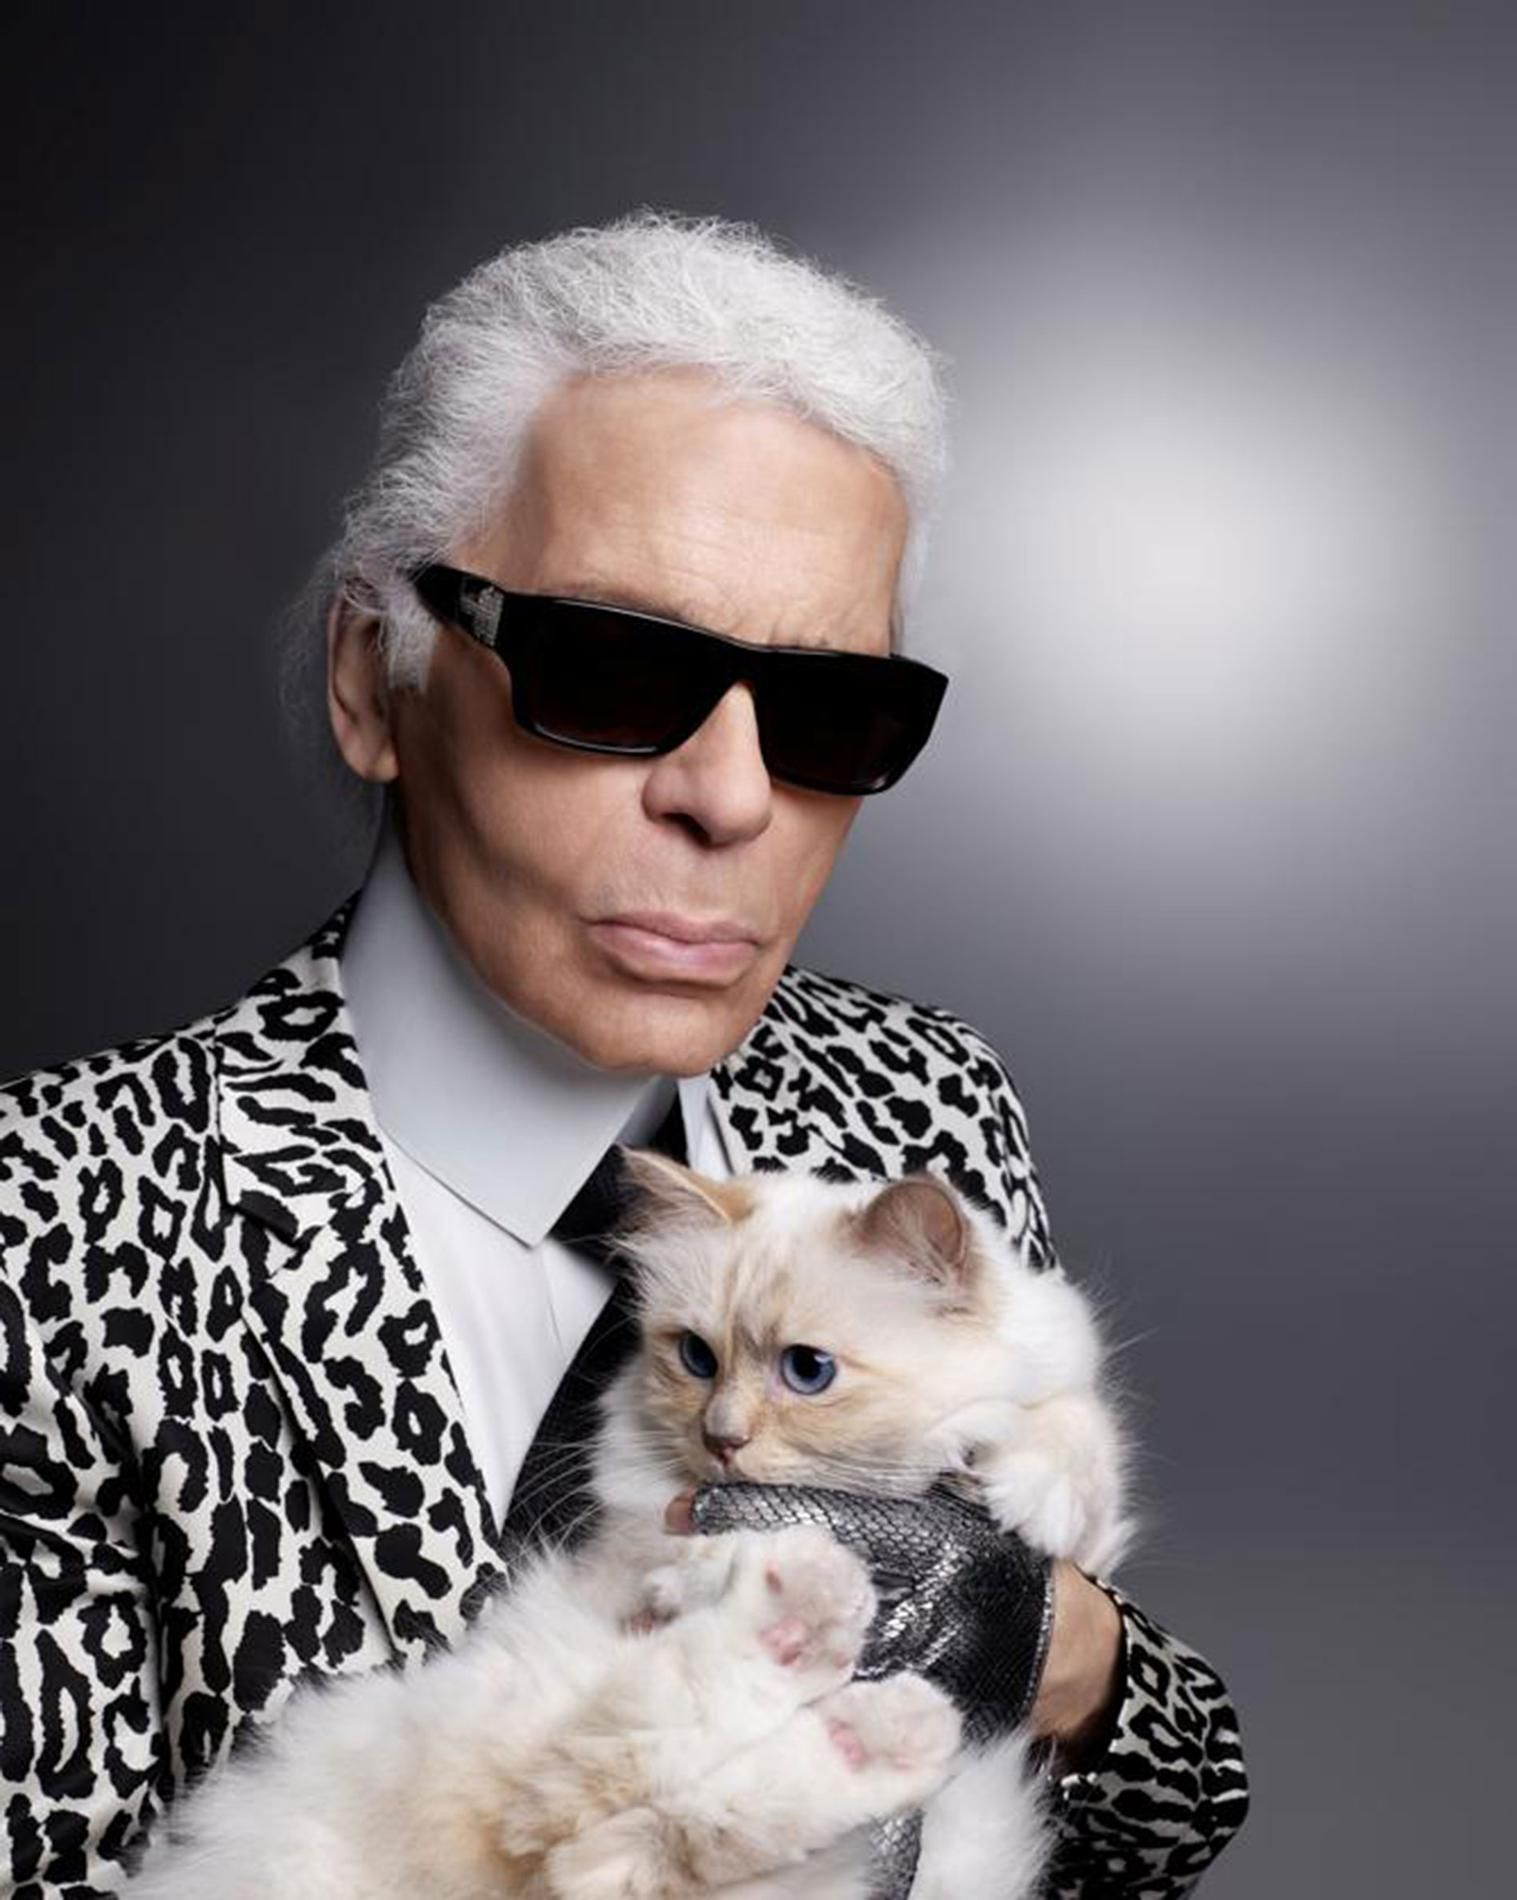 Karl Lagerfeld + Cat #love #cats #kittens #animals